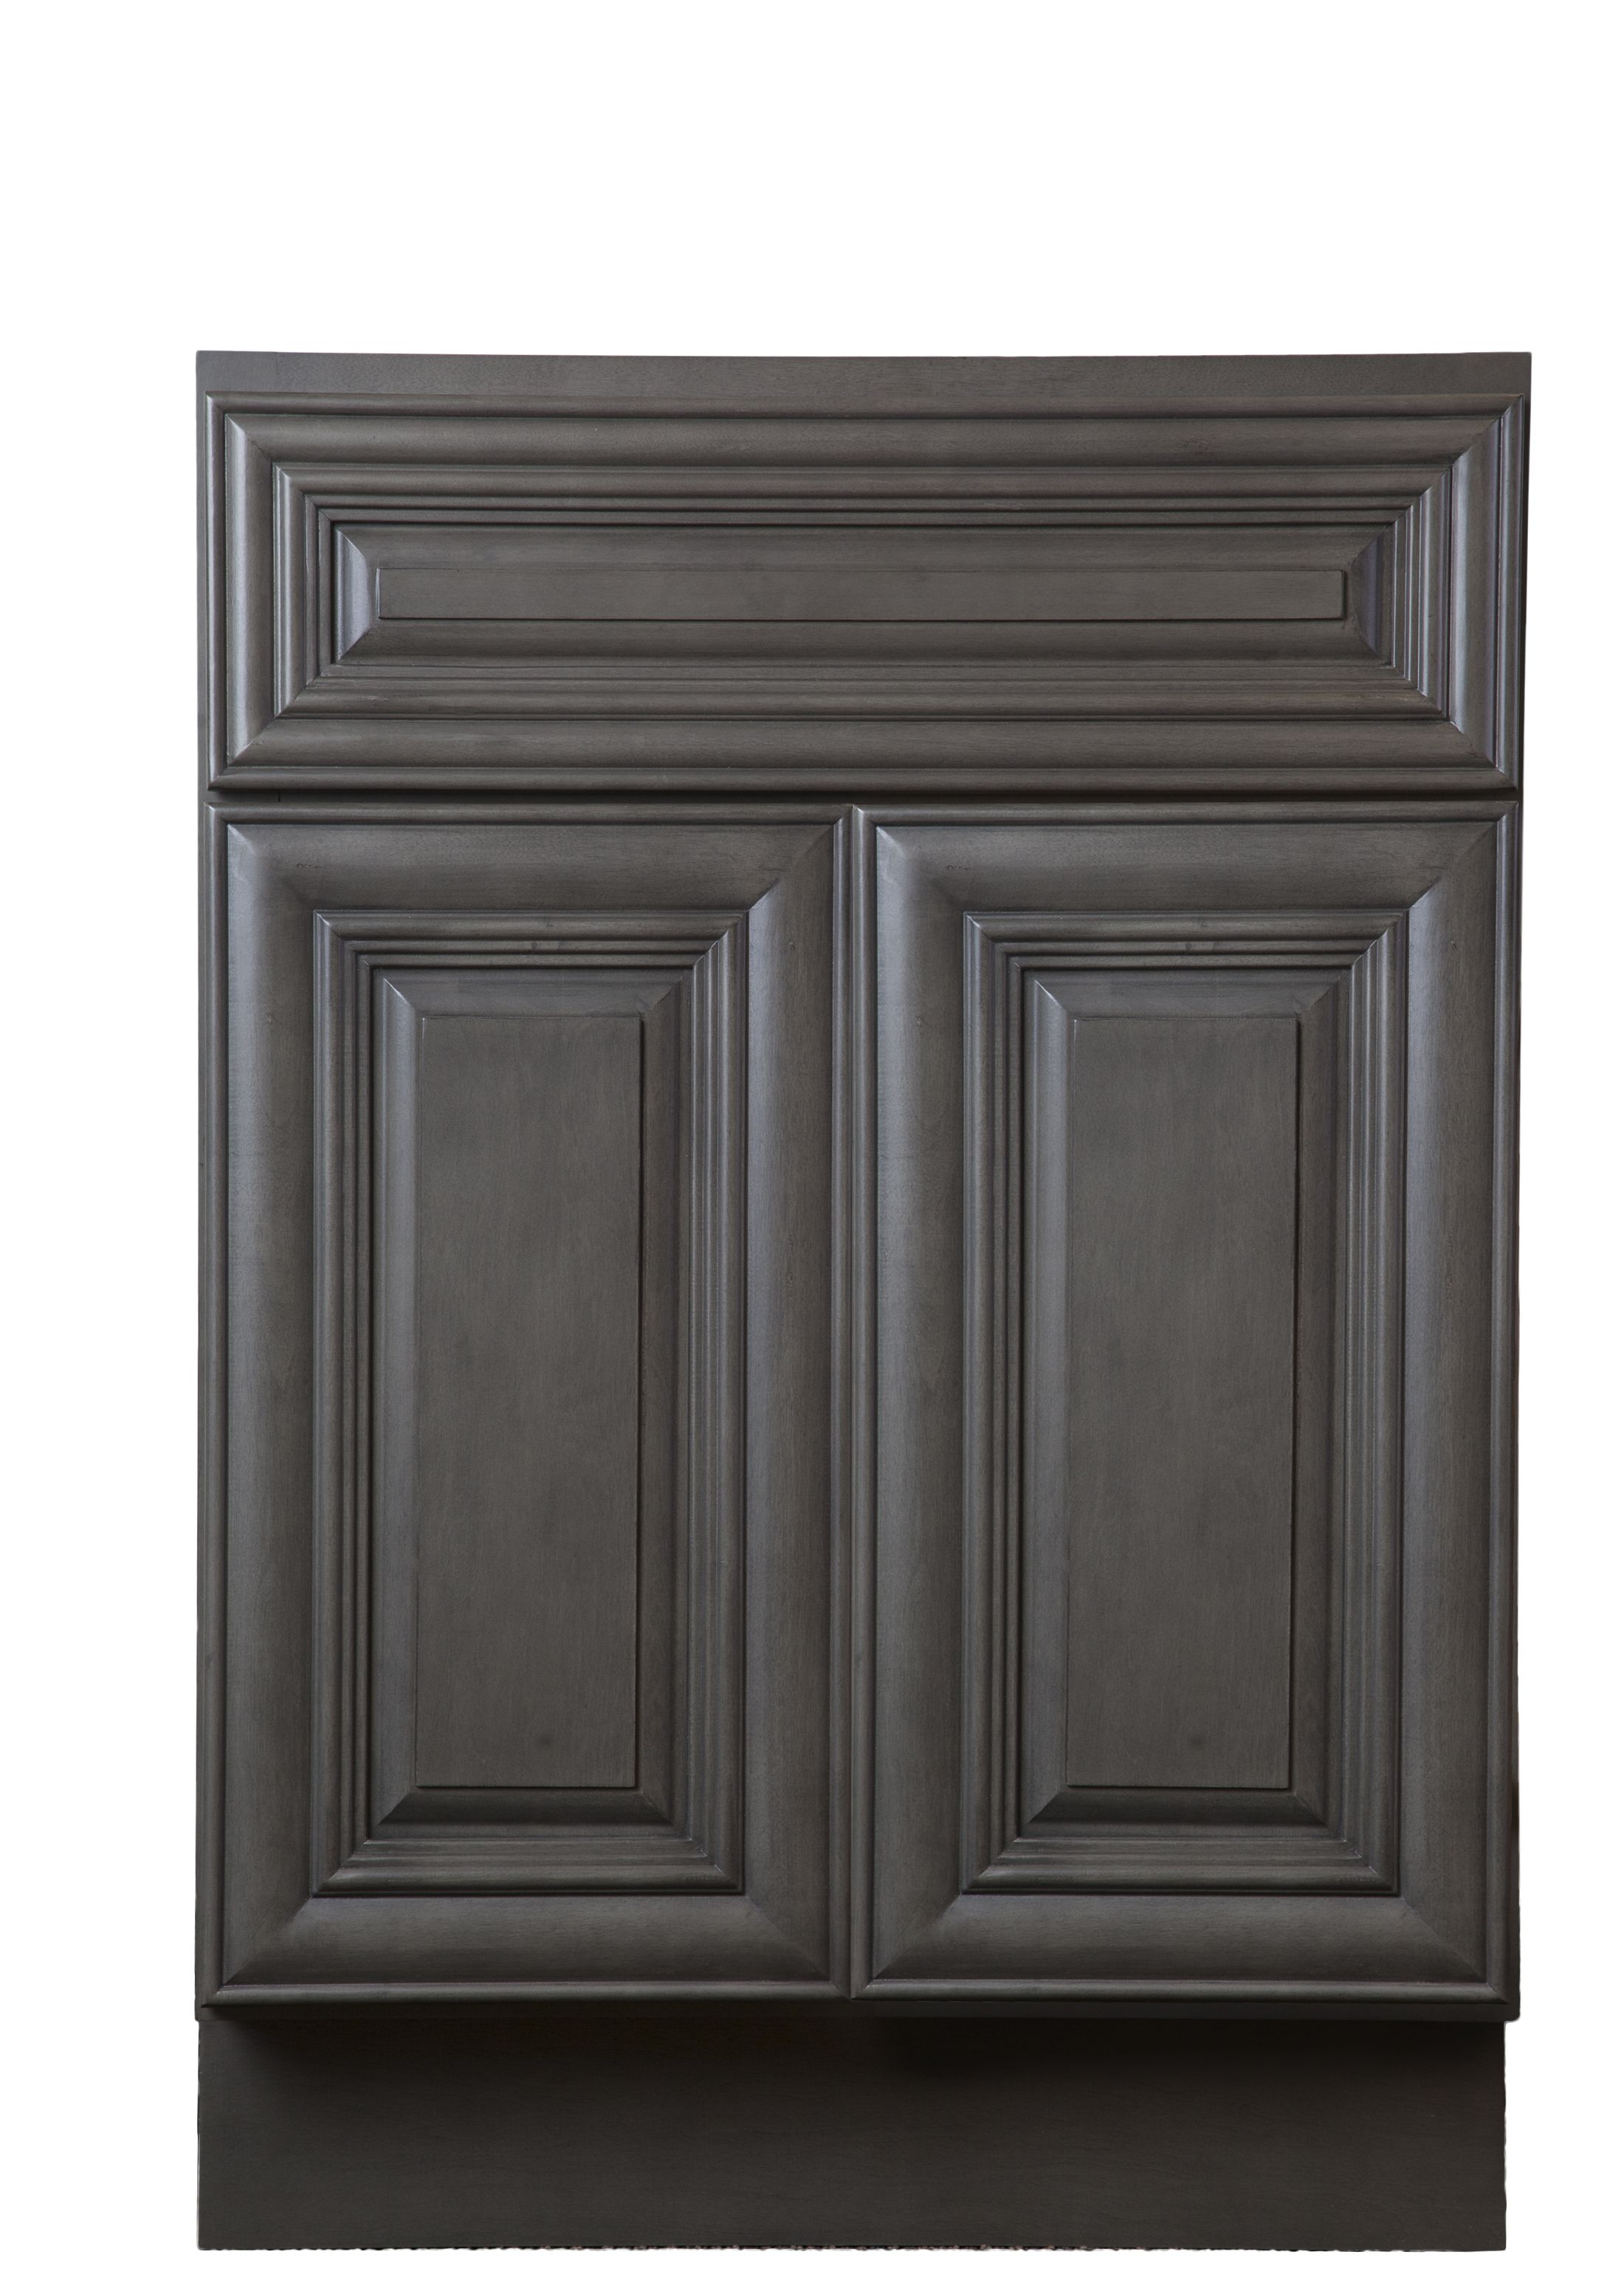 Just in Kensington Mist Grey Kitchen Cabinets from Cabinets To Go